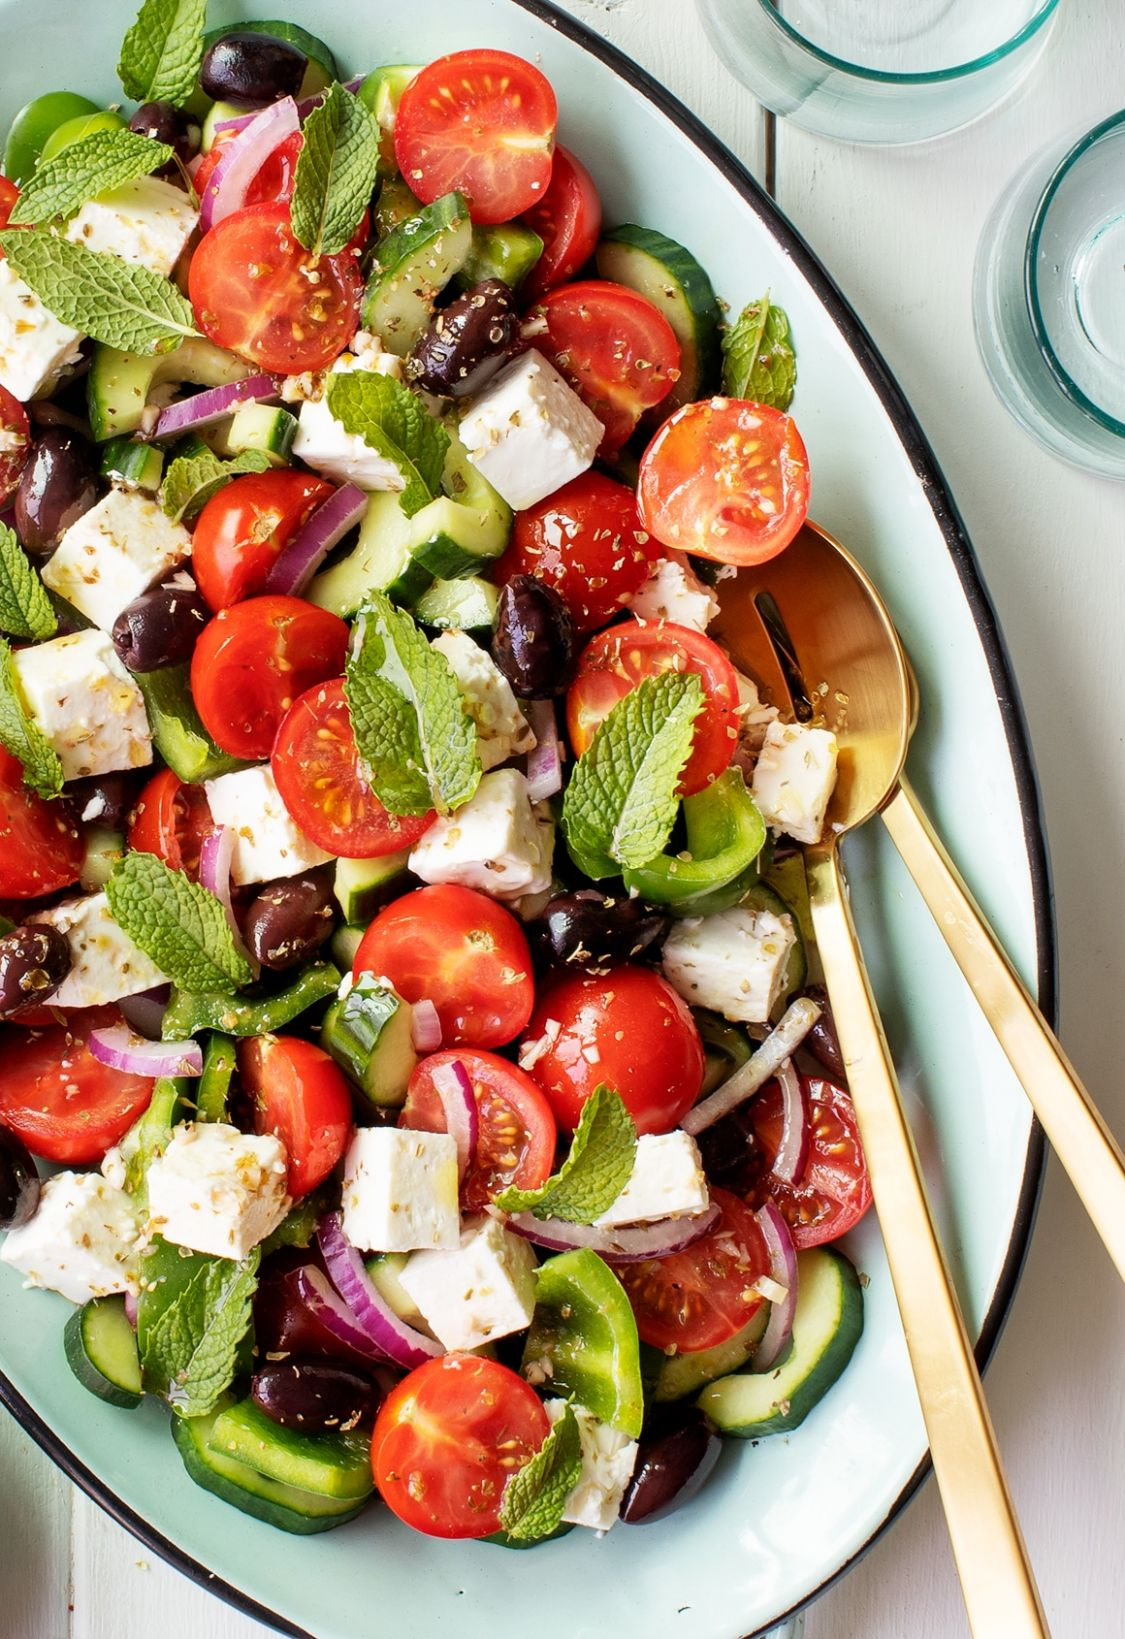 Best Salad Recipes: Easy Greek Salad - Salad Recipes You Can Make At Home